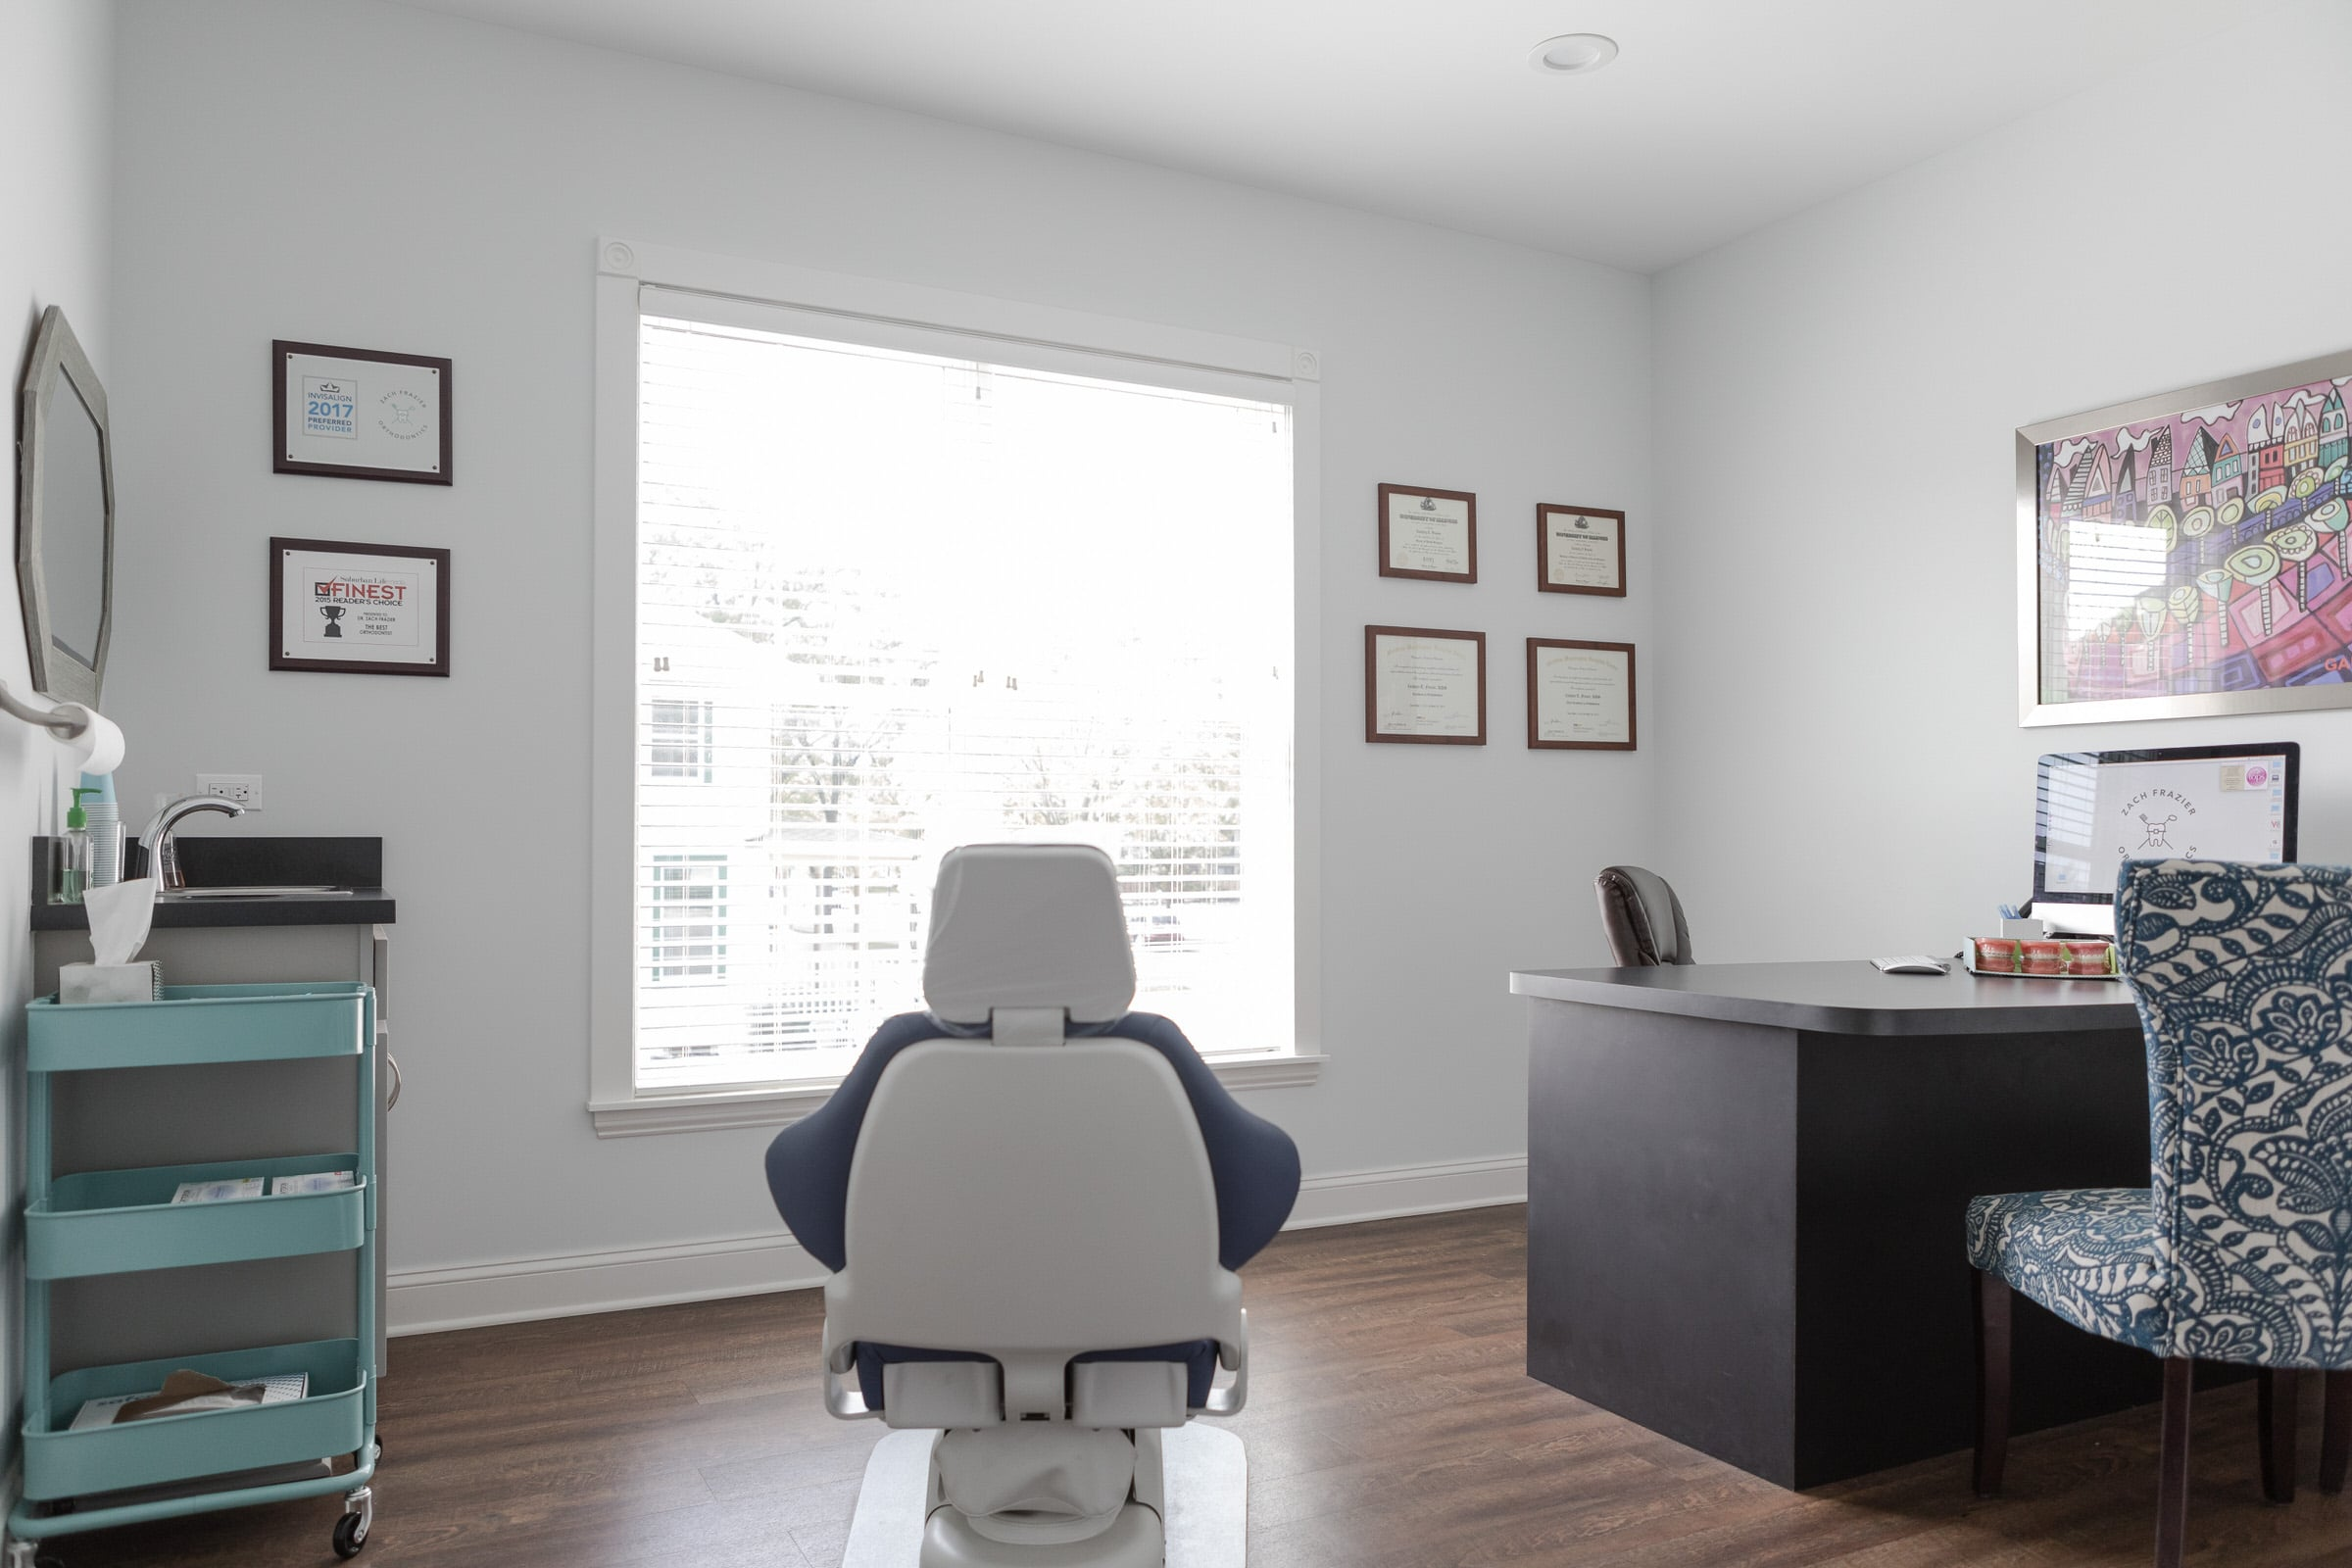 orthodontics consultation room